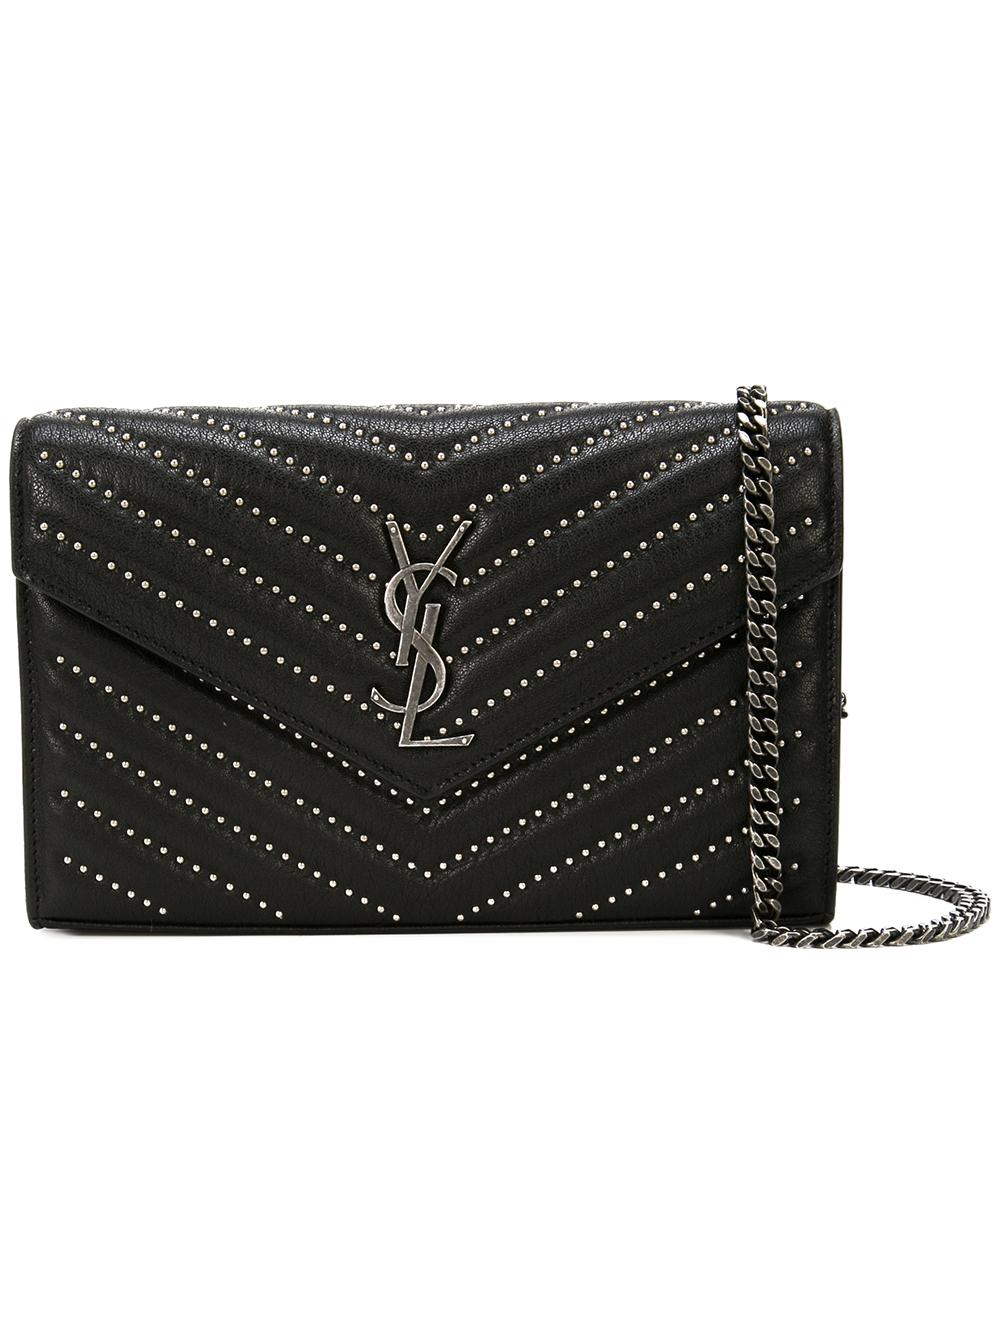 Small Monogram Kate Chain Bag With Tassel